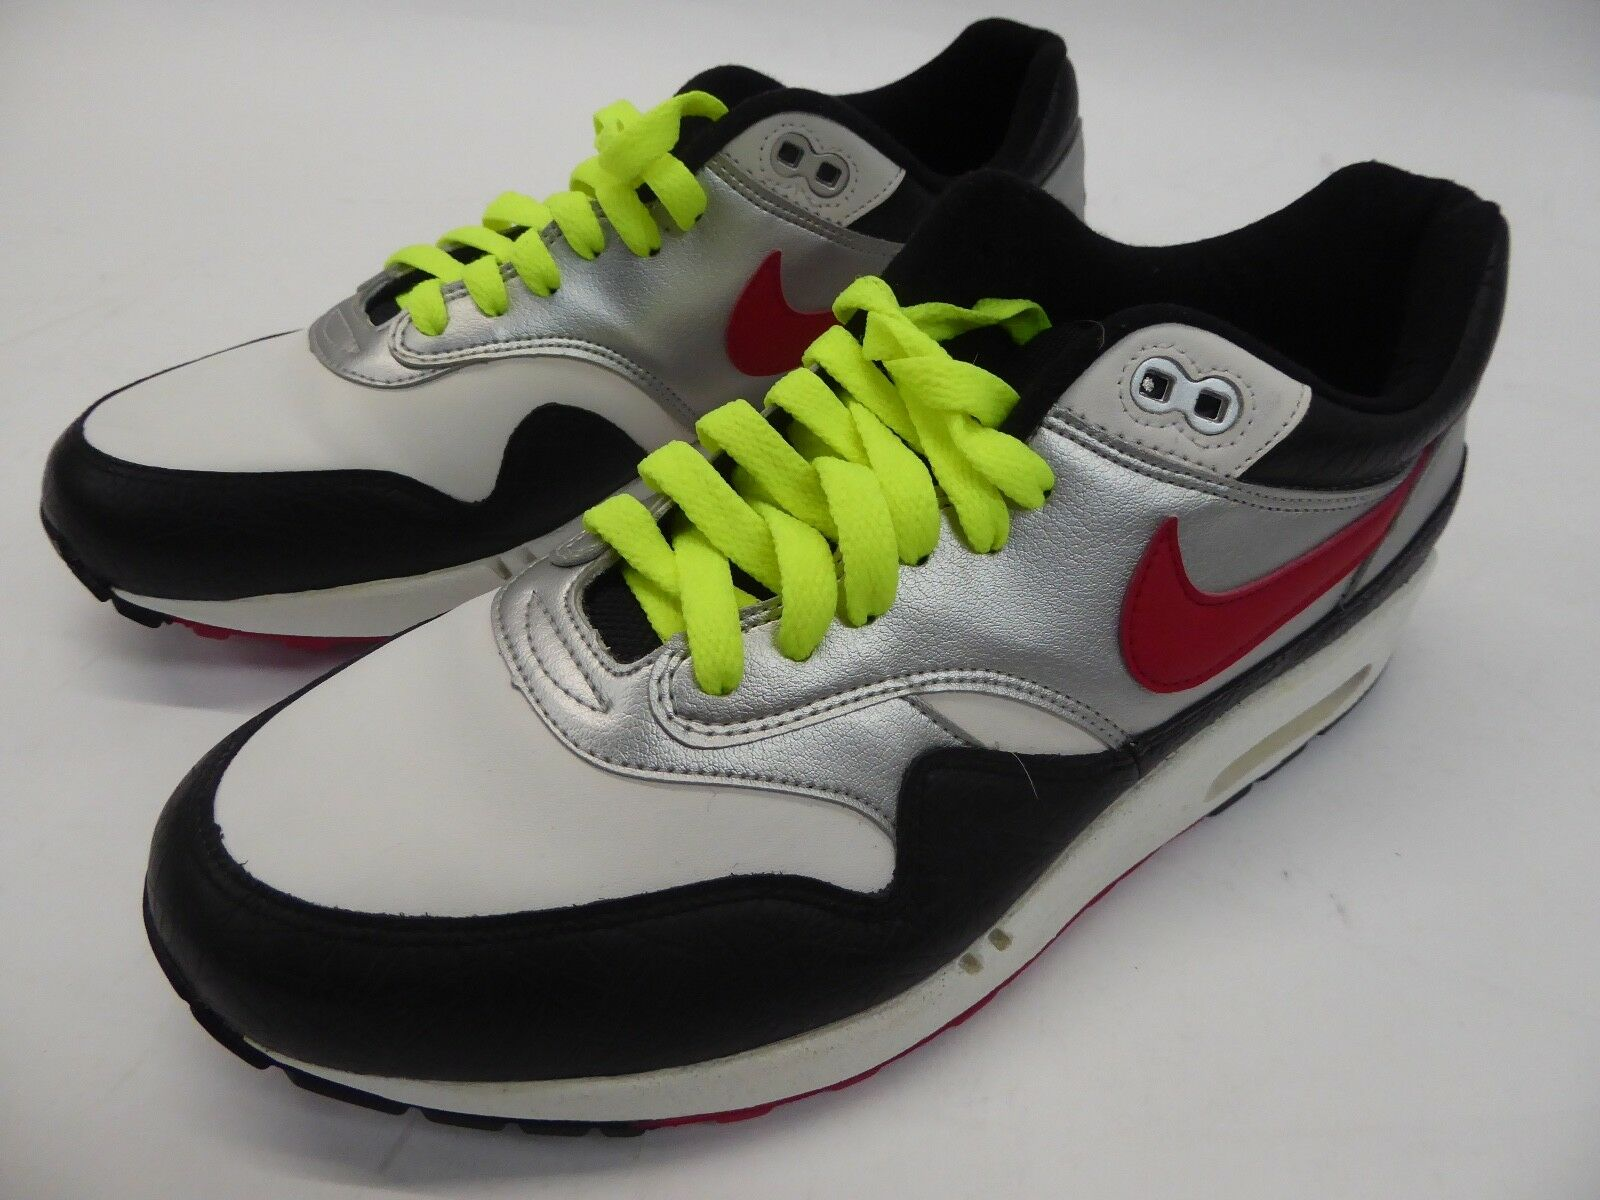 RETRO 2008 NIKE MAX 318715-061 tamaño 10 AIR